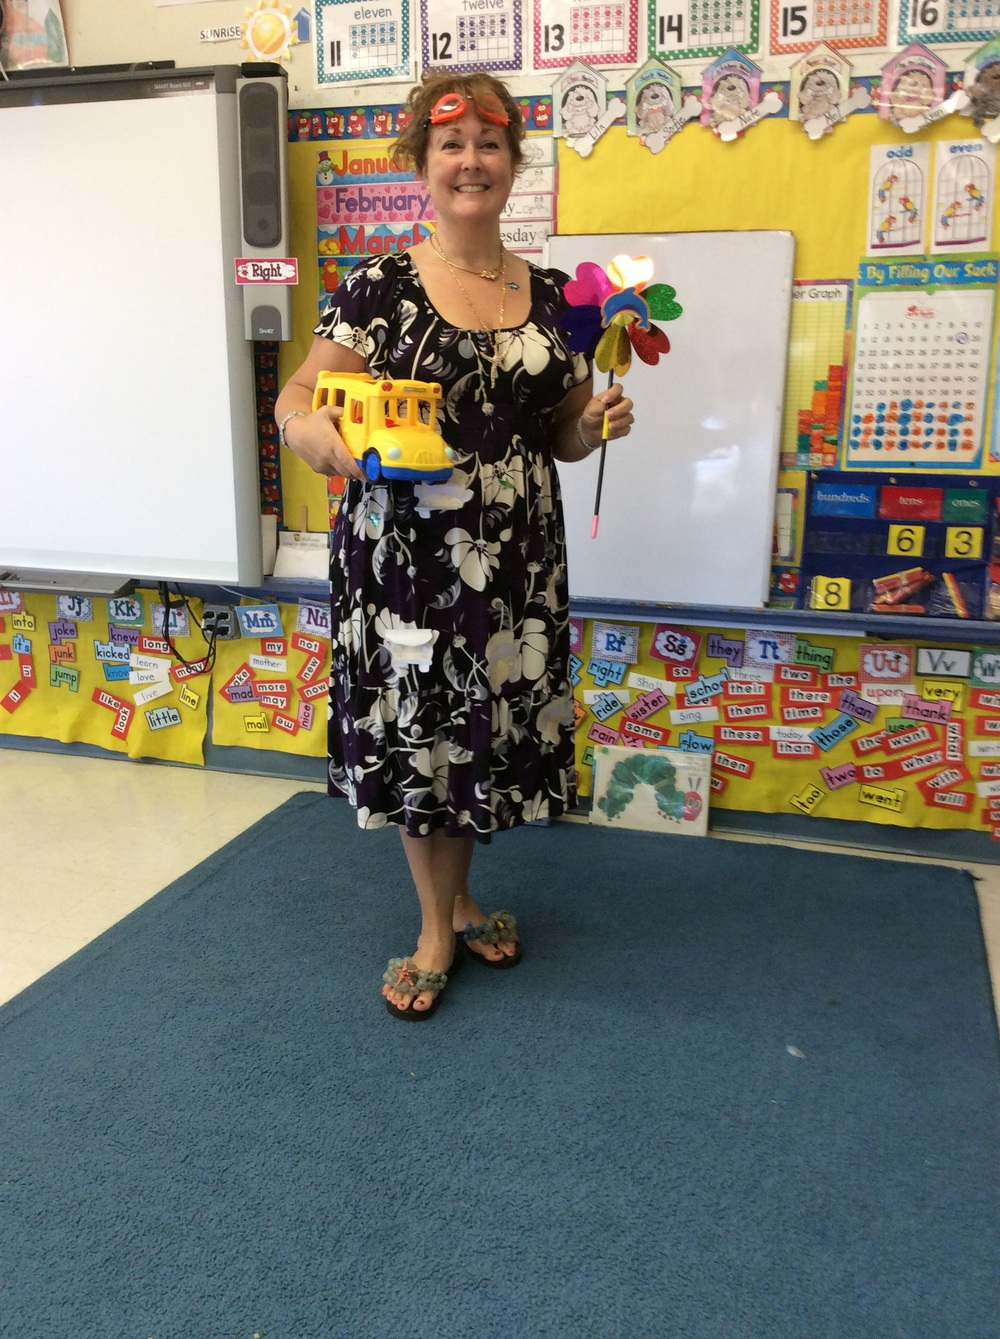 Miss Frizzle!, aka Mrs. Campbell